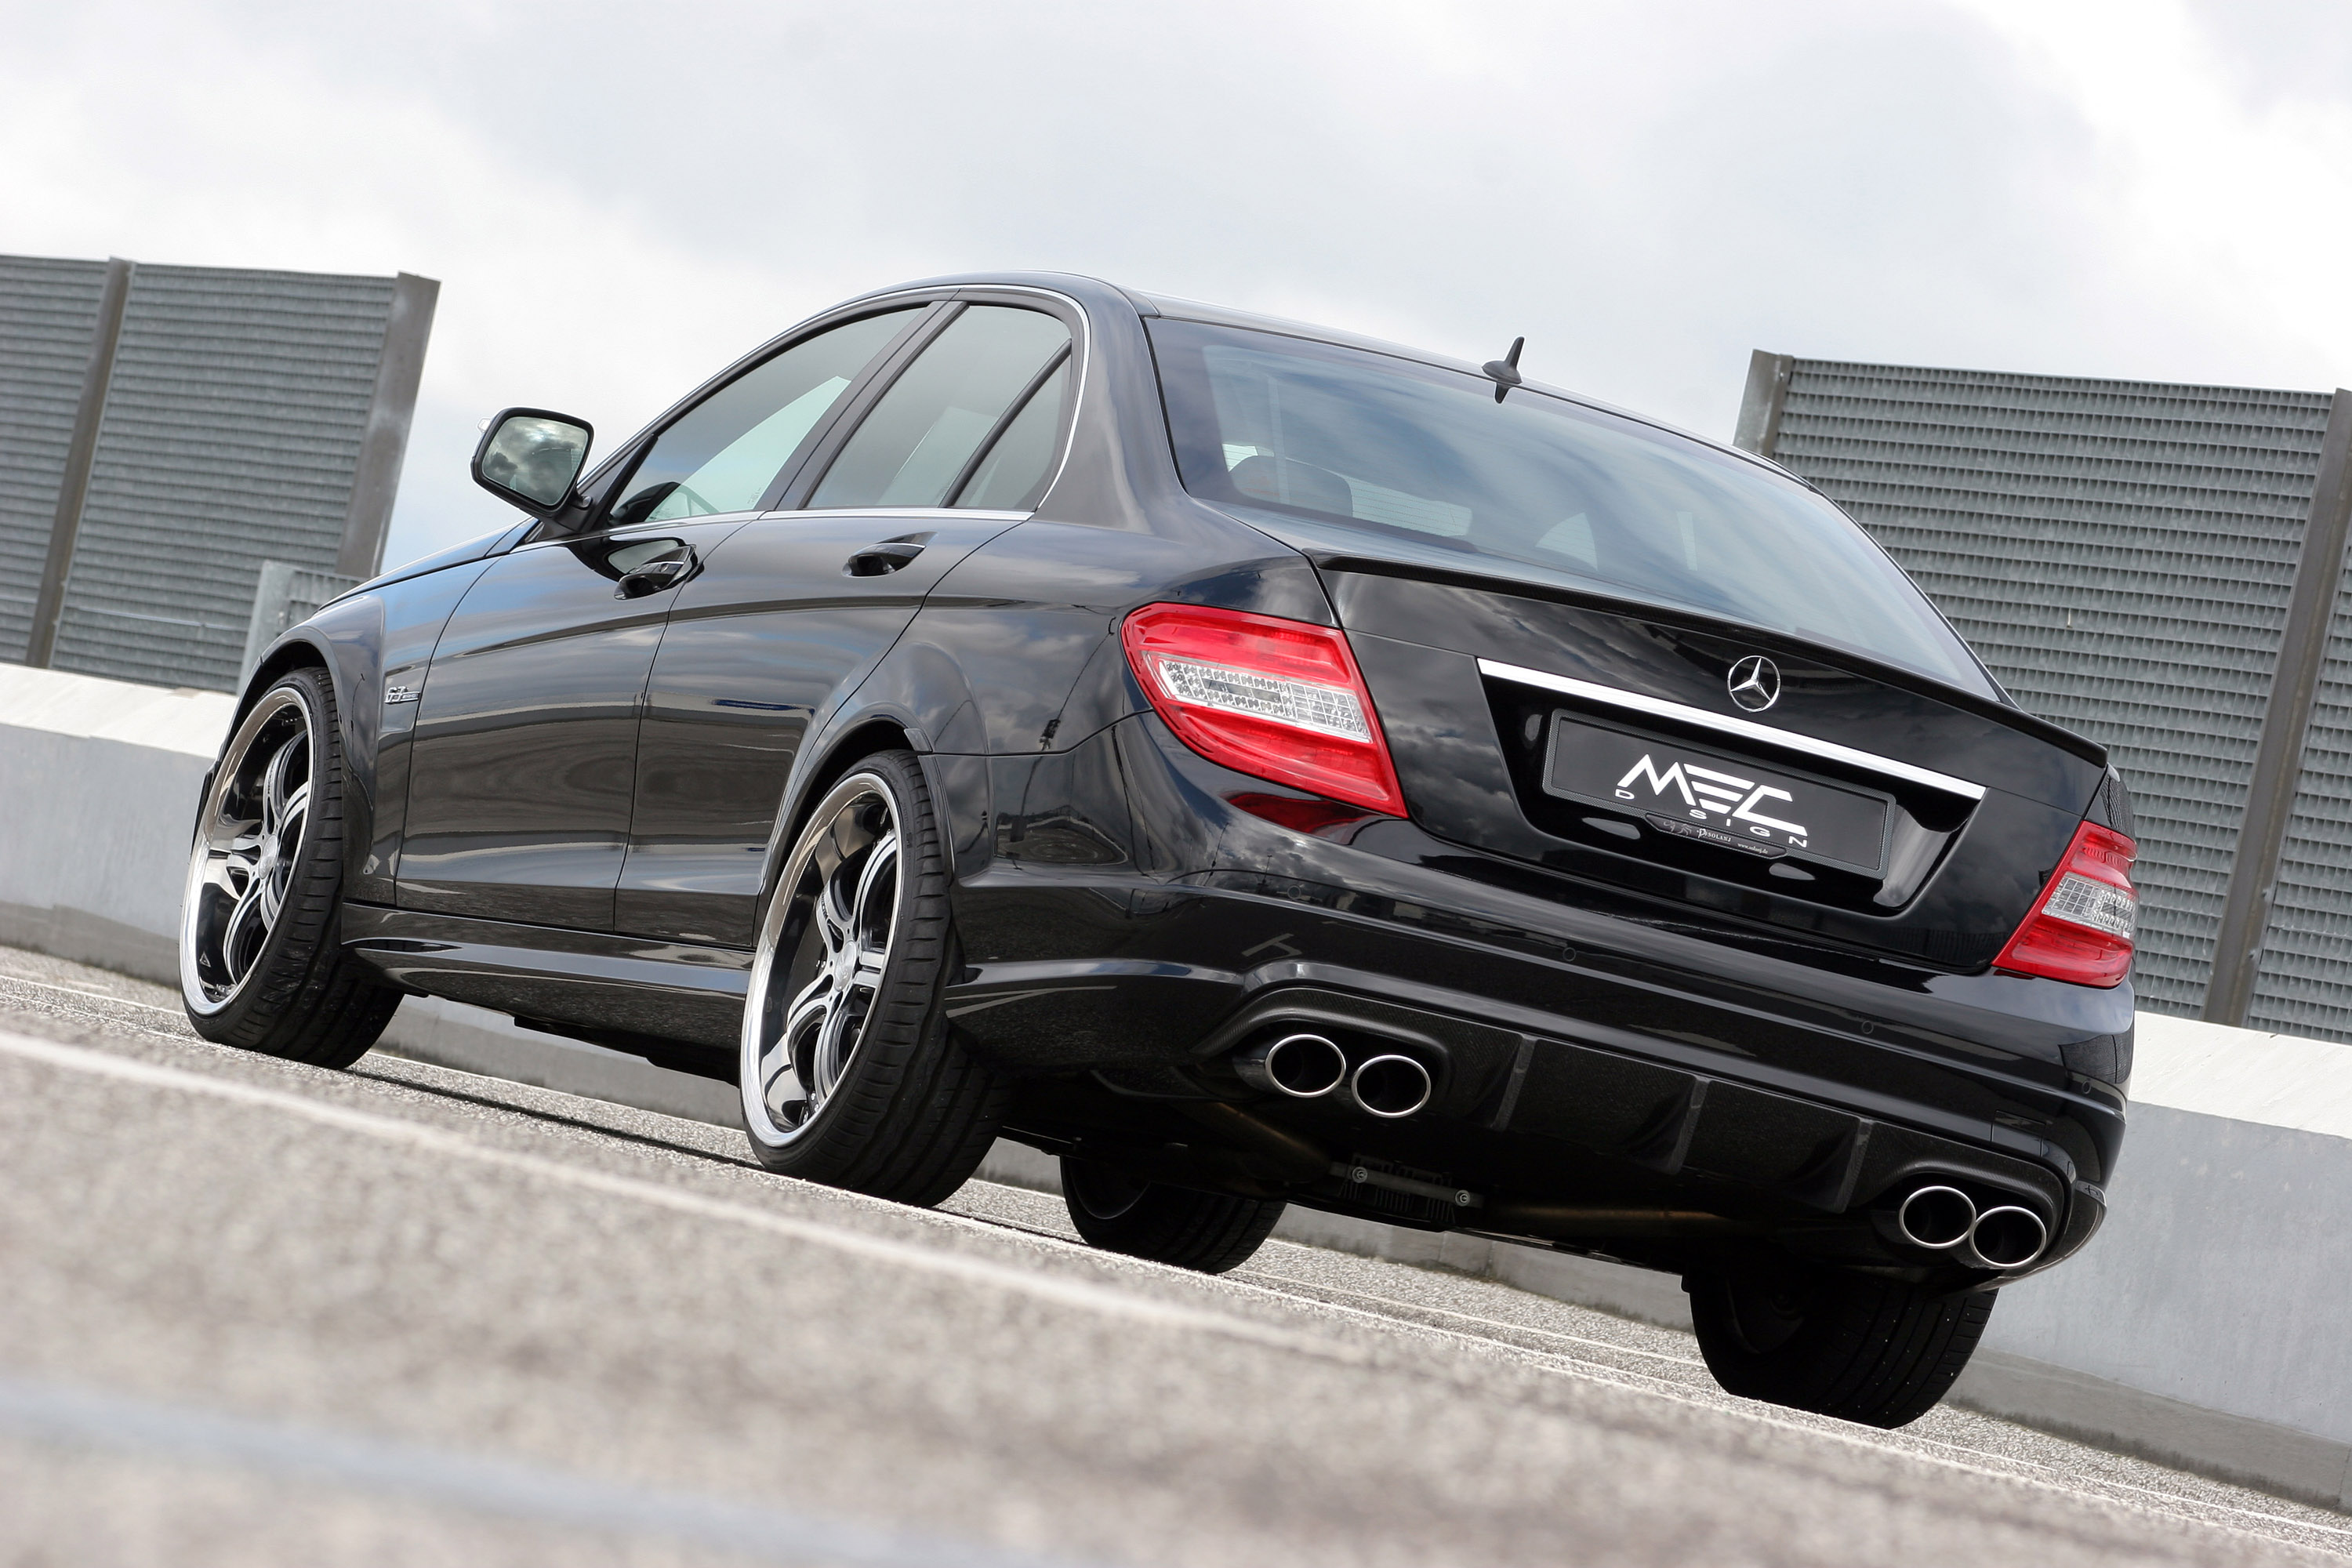 Mec design c63 amg pure performance athlete for Mercedes benz c63 amg 2010